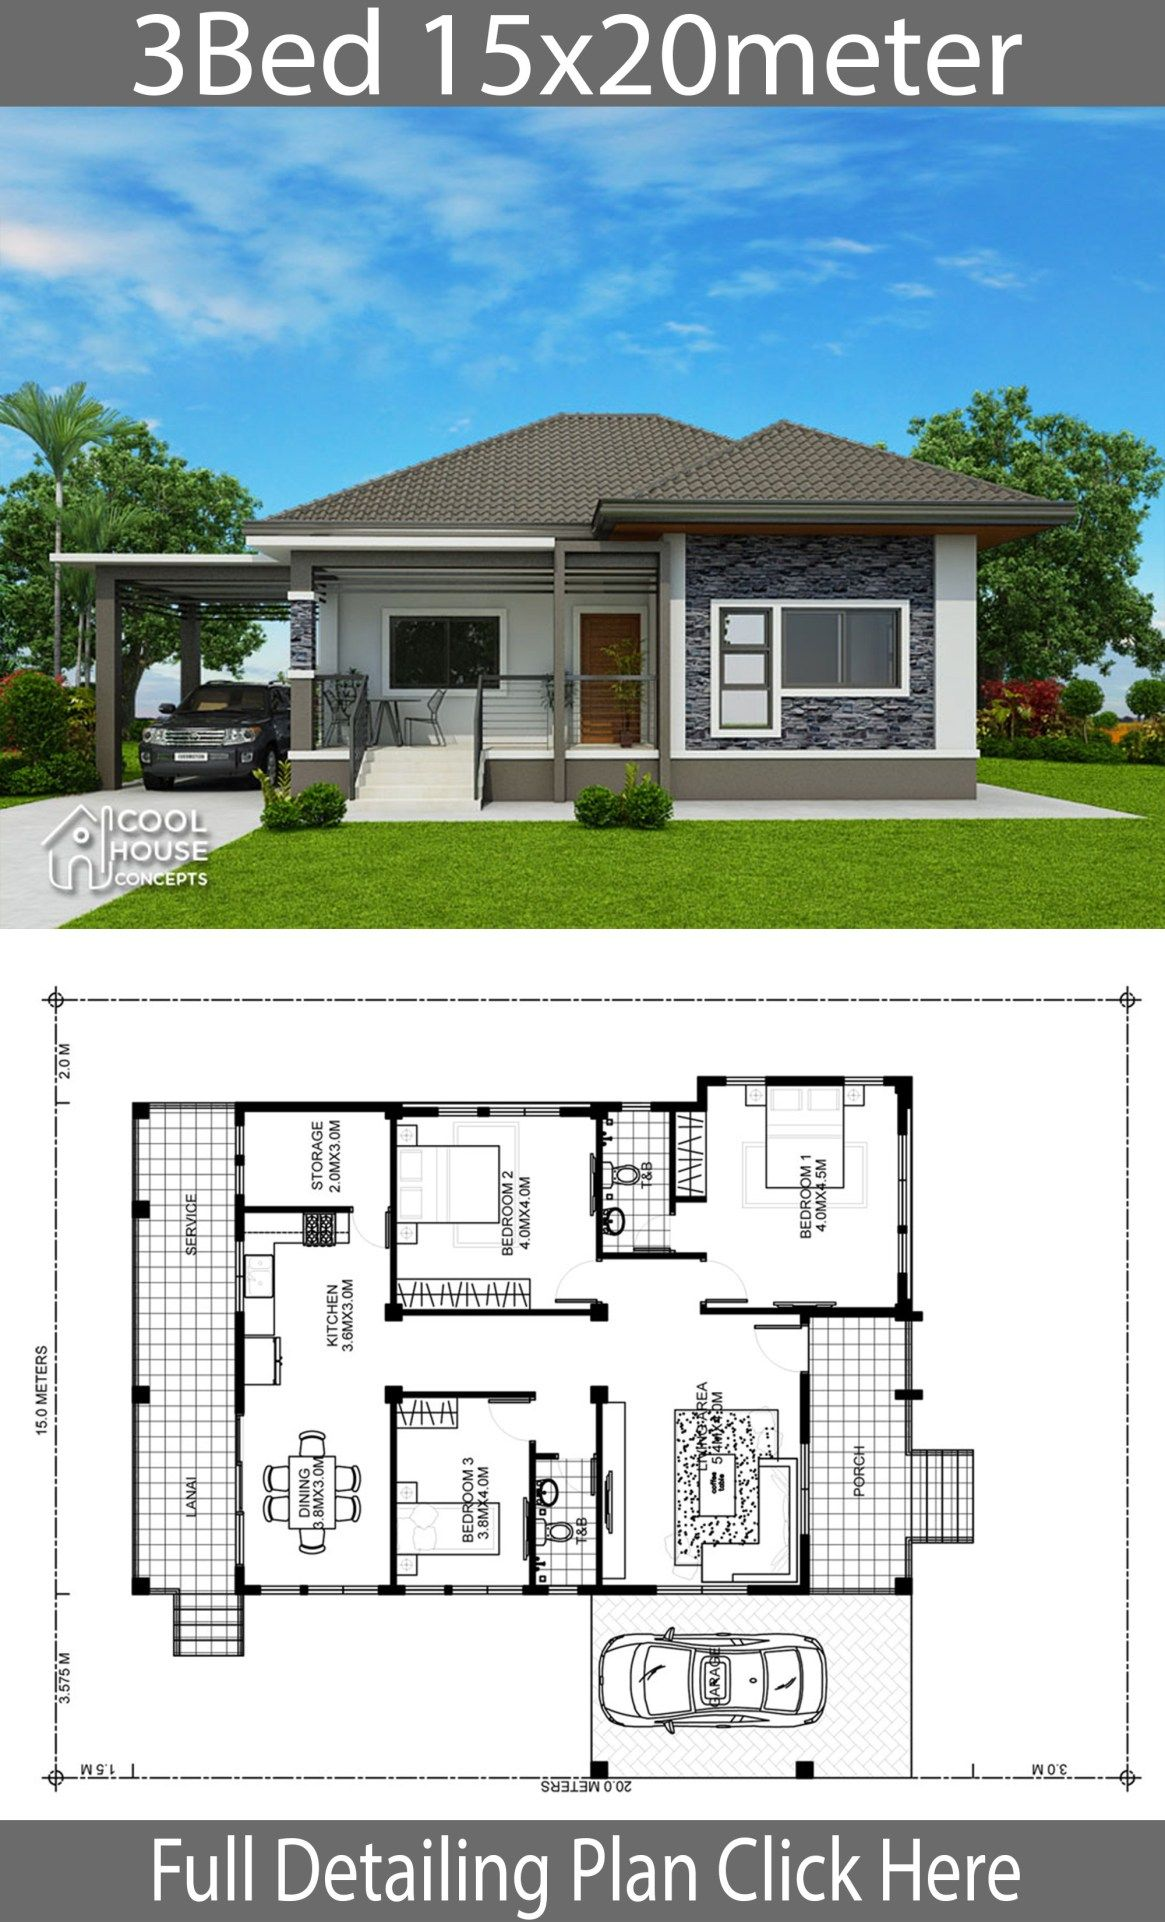 Home Design Plan 15x20m With 3 Bedrooms Home Design With Plansearch Philippines House Design Beautiful House Plans Modern Bungalow House